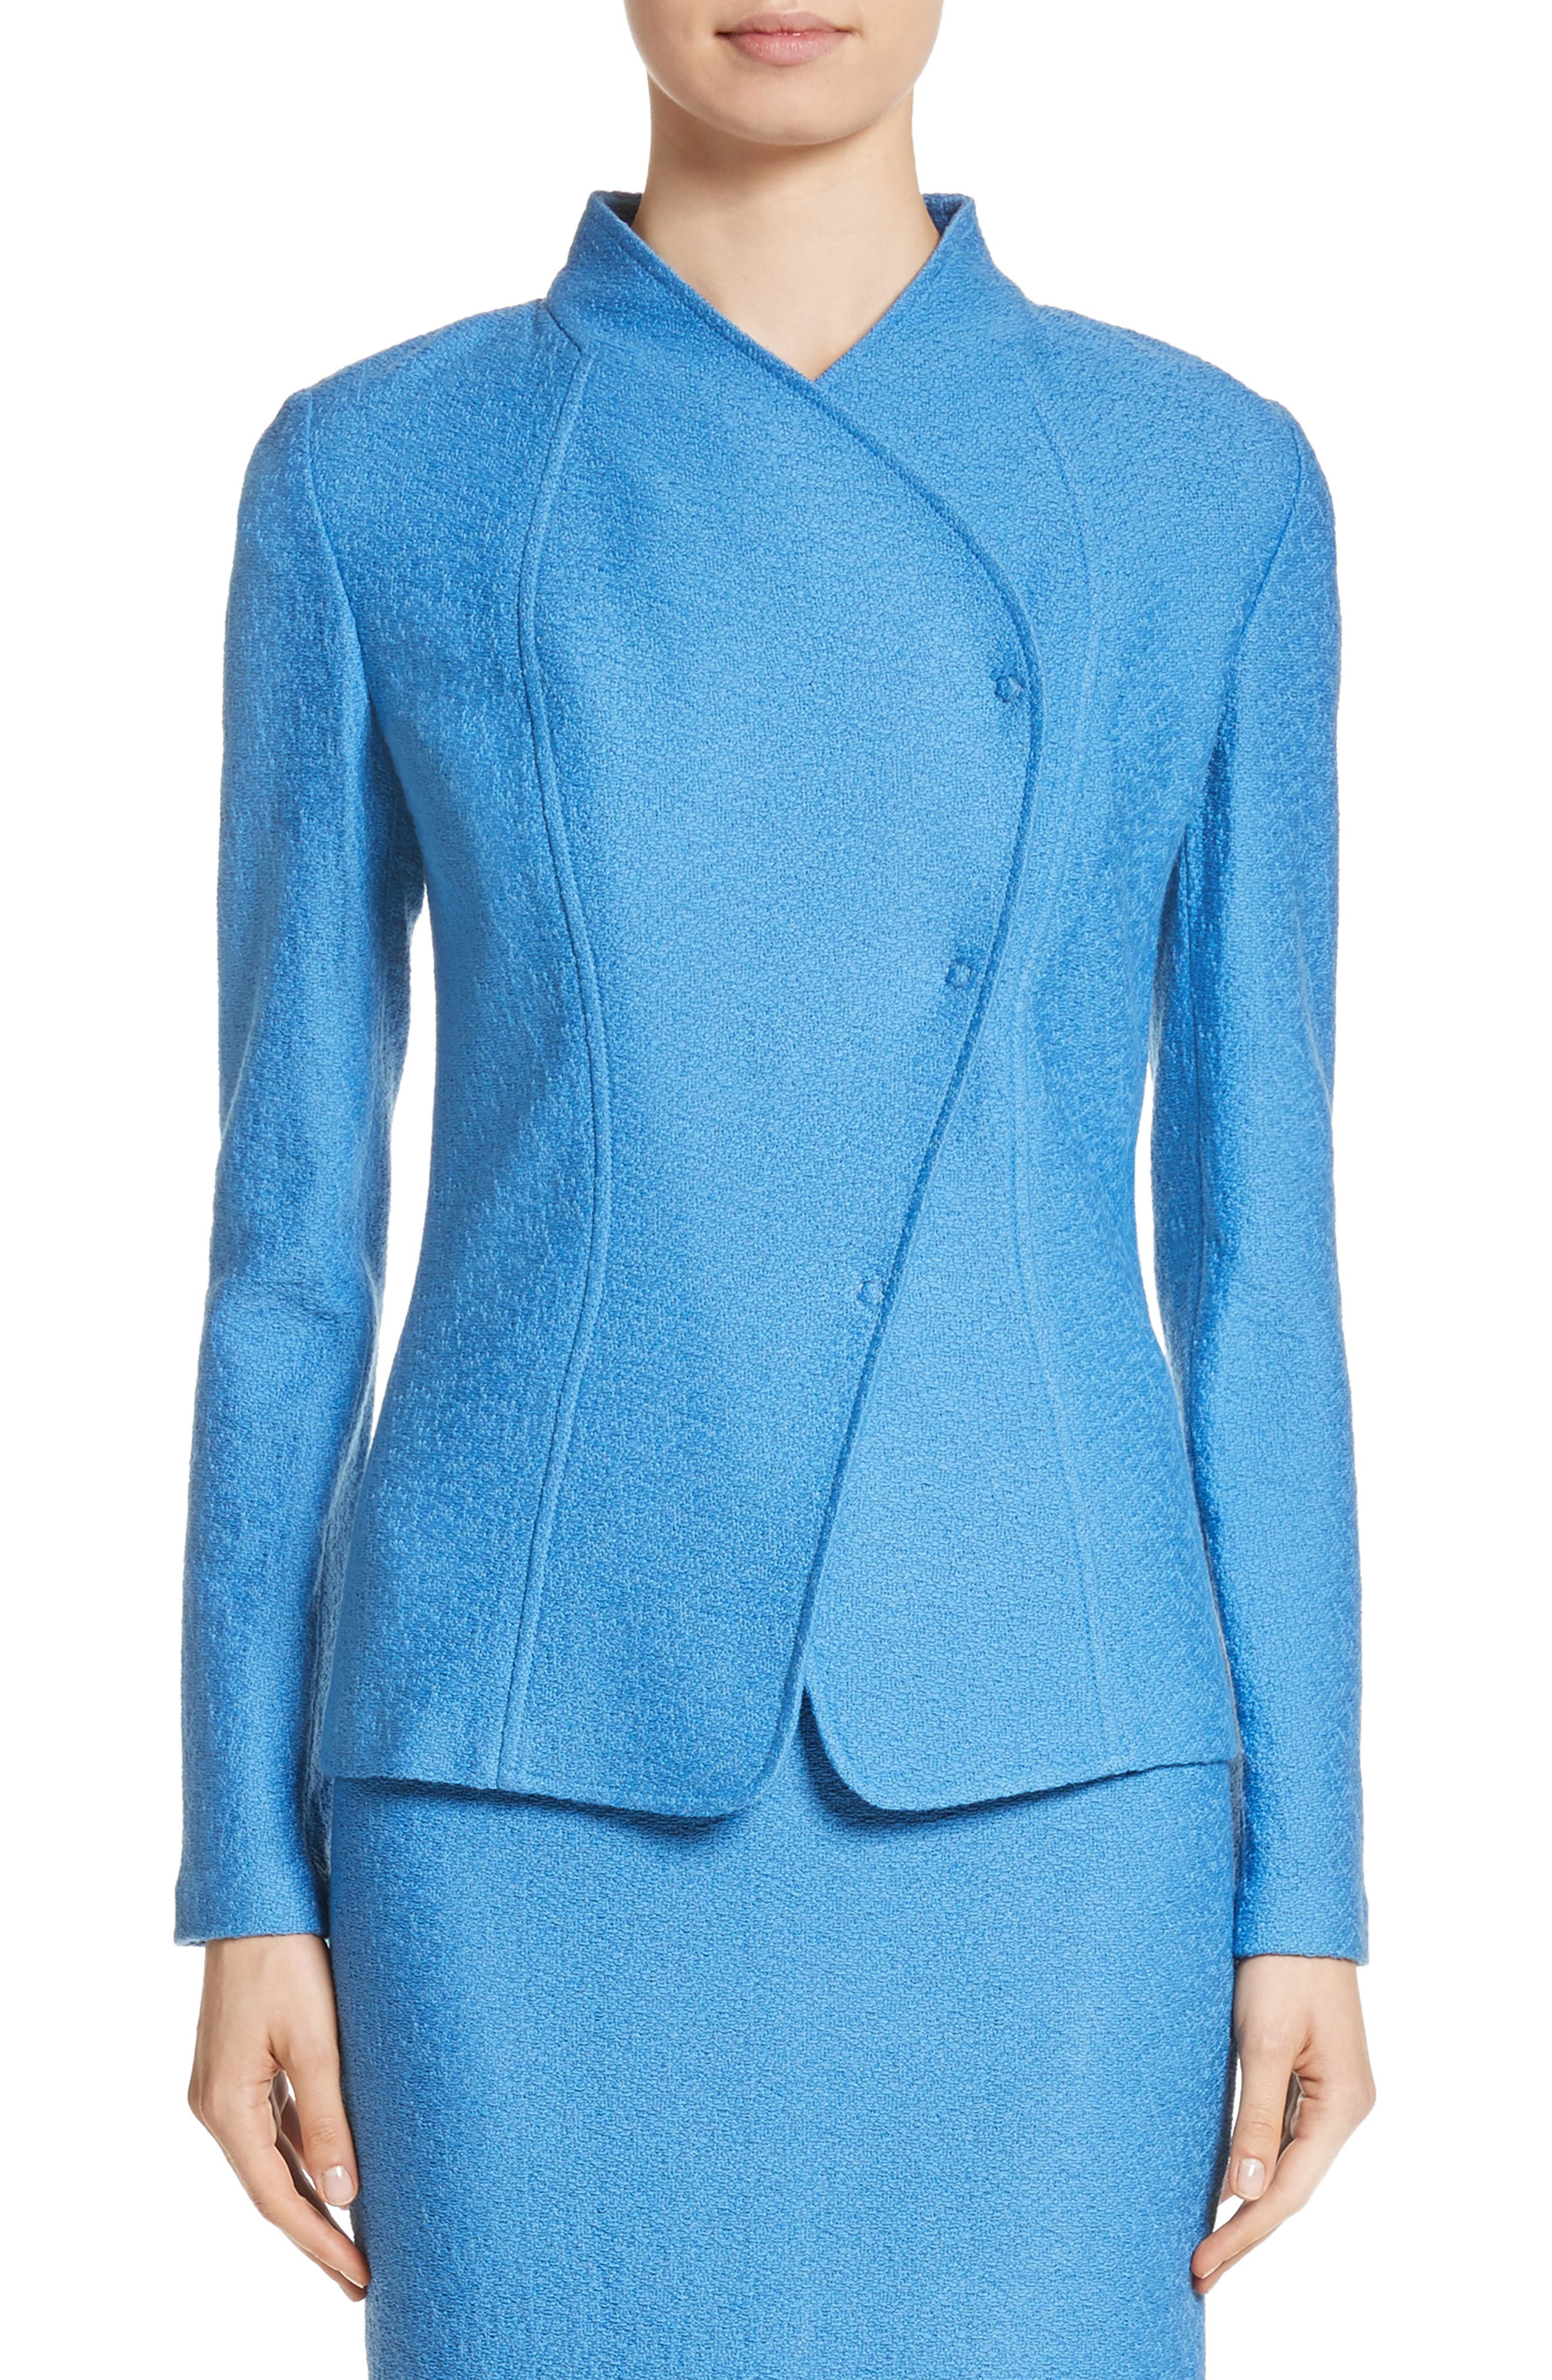 Alternate Image 1 Selected - St. John Collection Hannah Knit Stand Collar Jacket